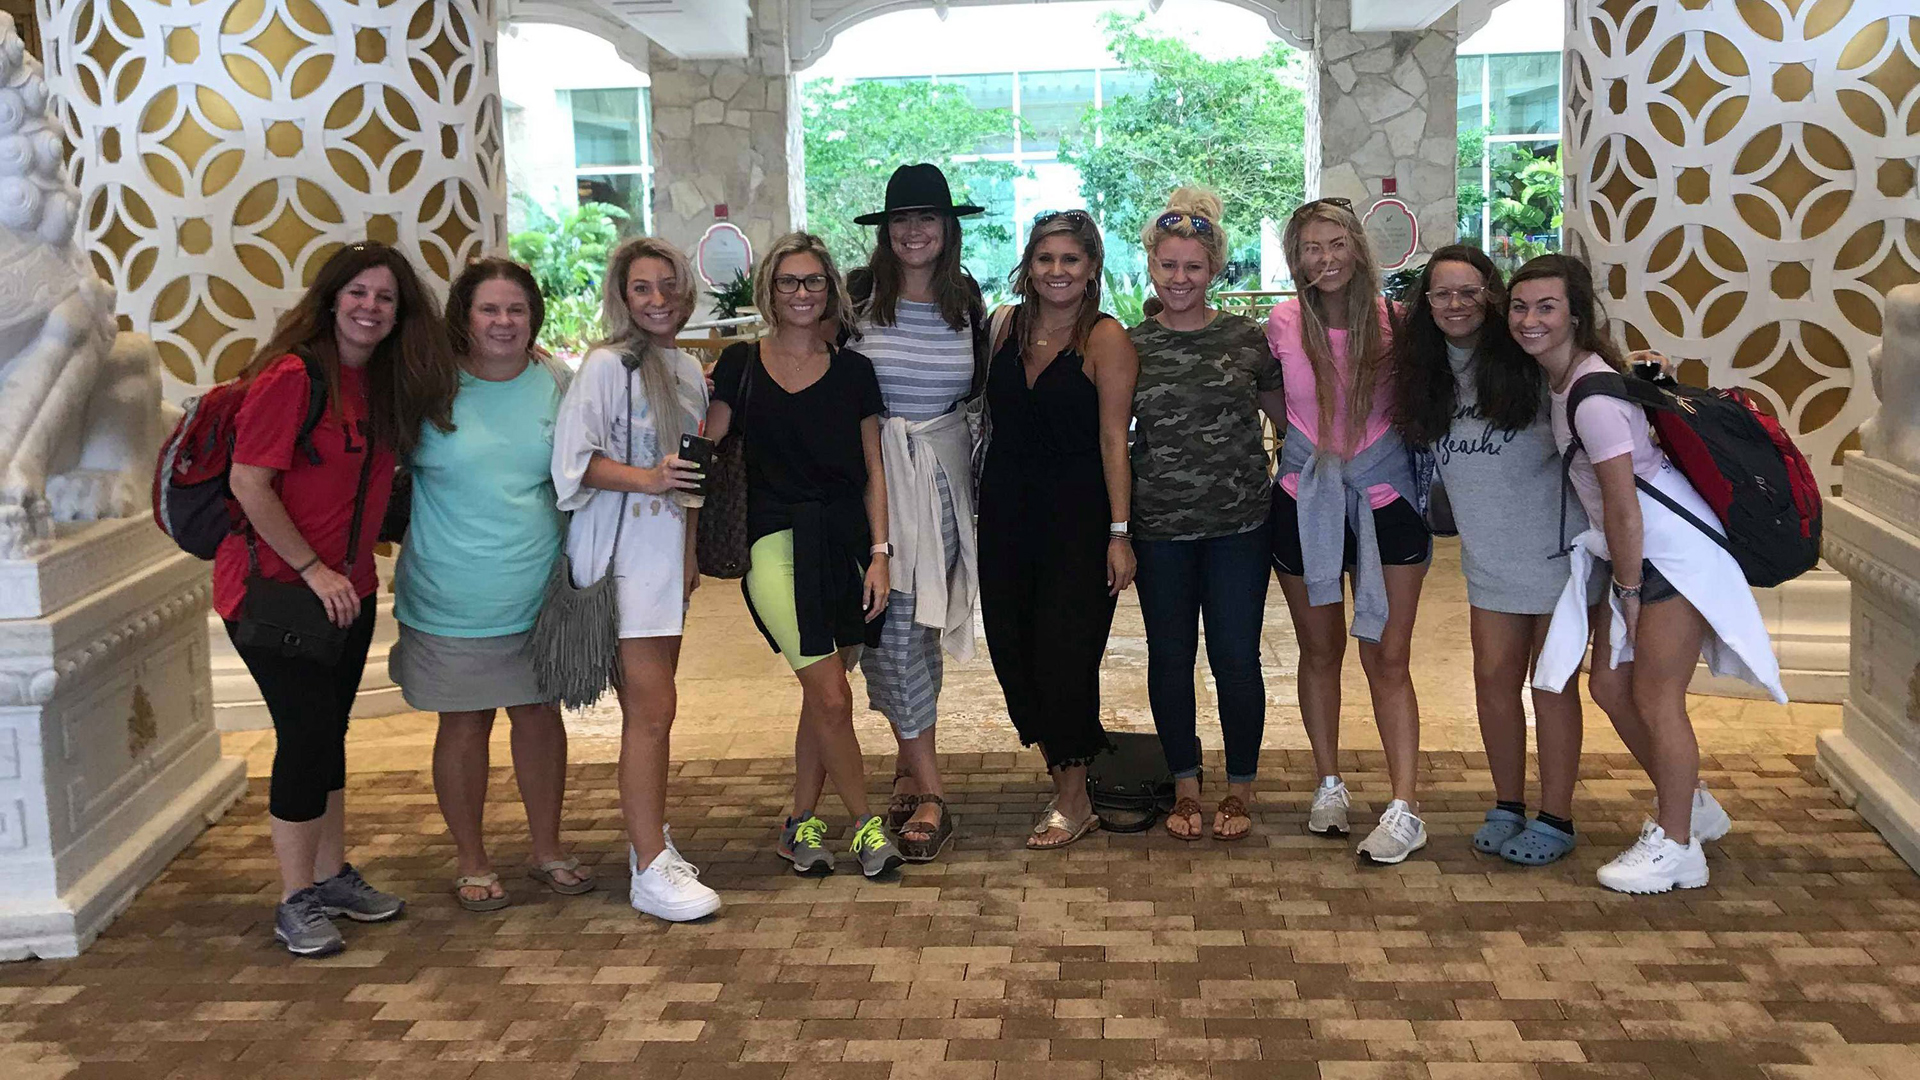 The bride to be, Rikki Kahley, fourth from left, poses with her bachelorette party, including her mother, Sandy Gibbs Kahley, second from left, and sister Chloe, third from left. (Credit: Rikki Kahley)